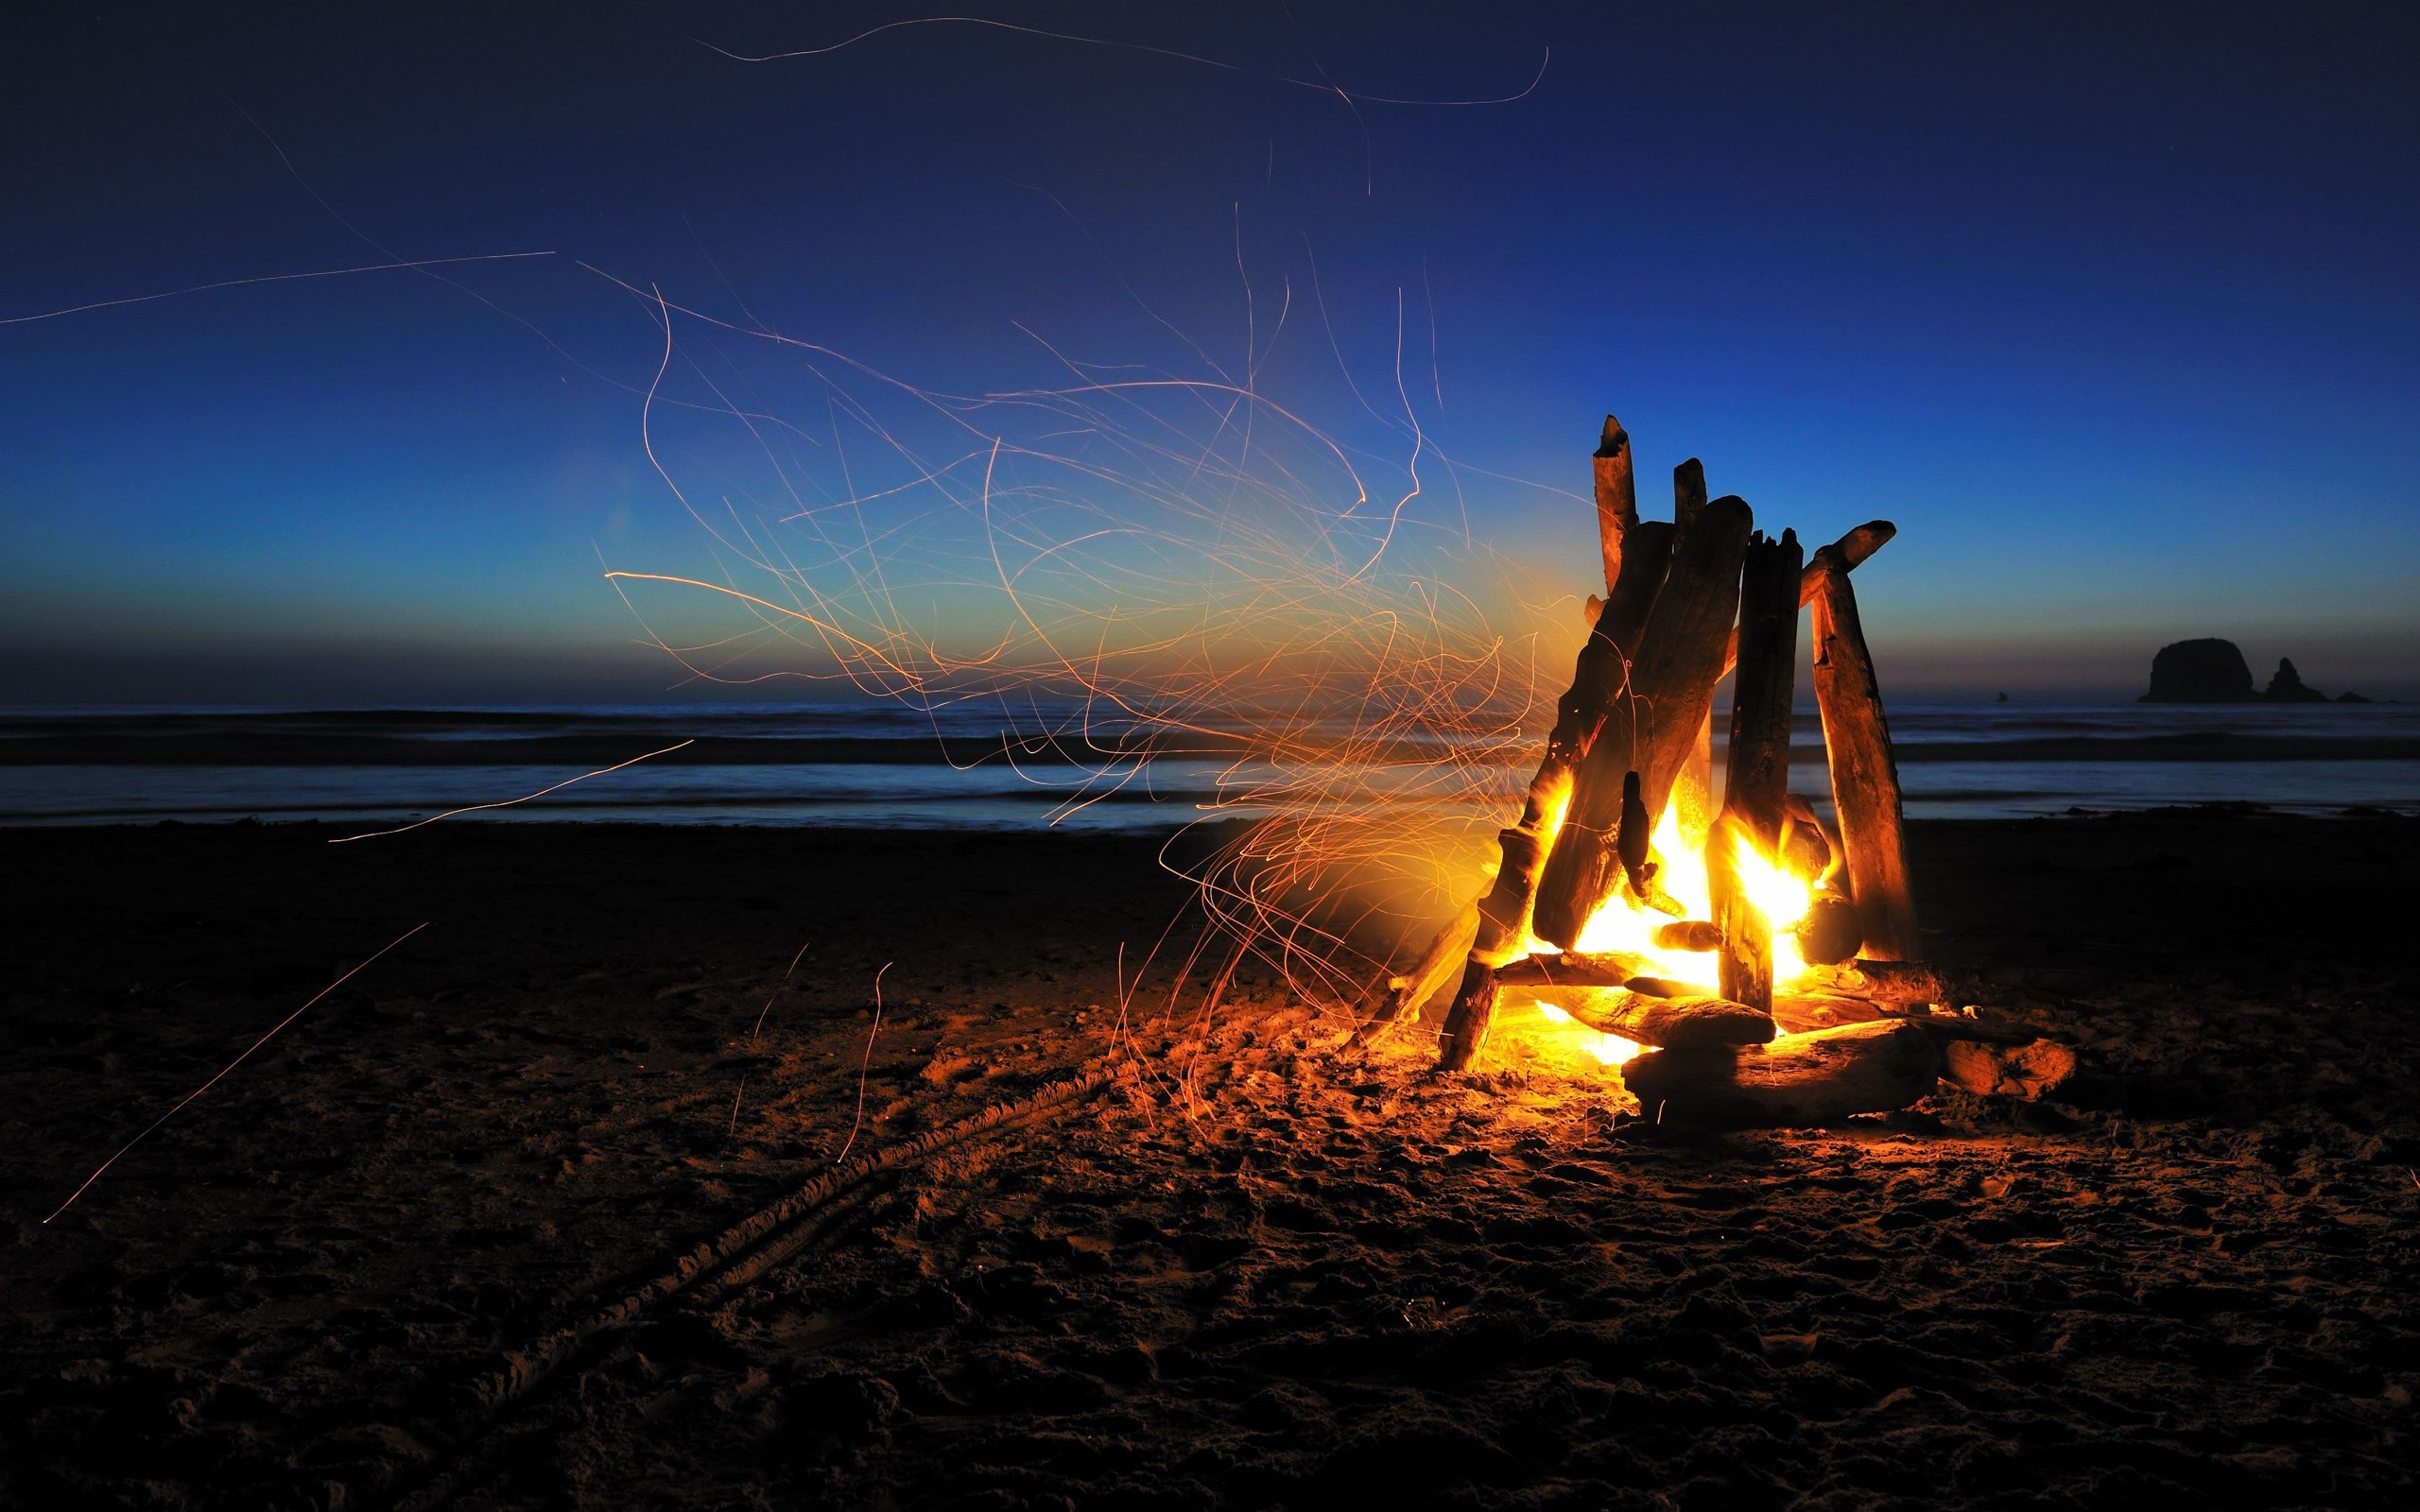 wallpaper.wiki-Beach-At-Night-HD-Images-PIC-